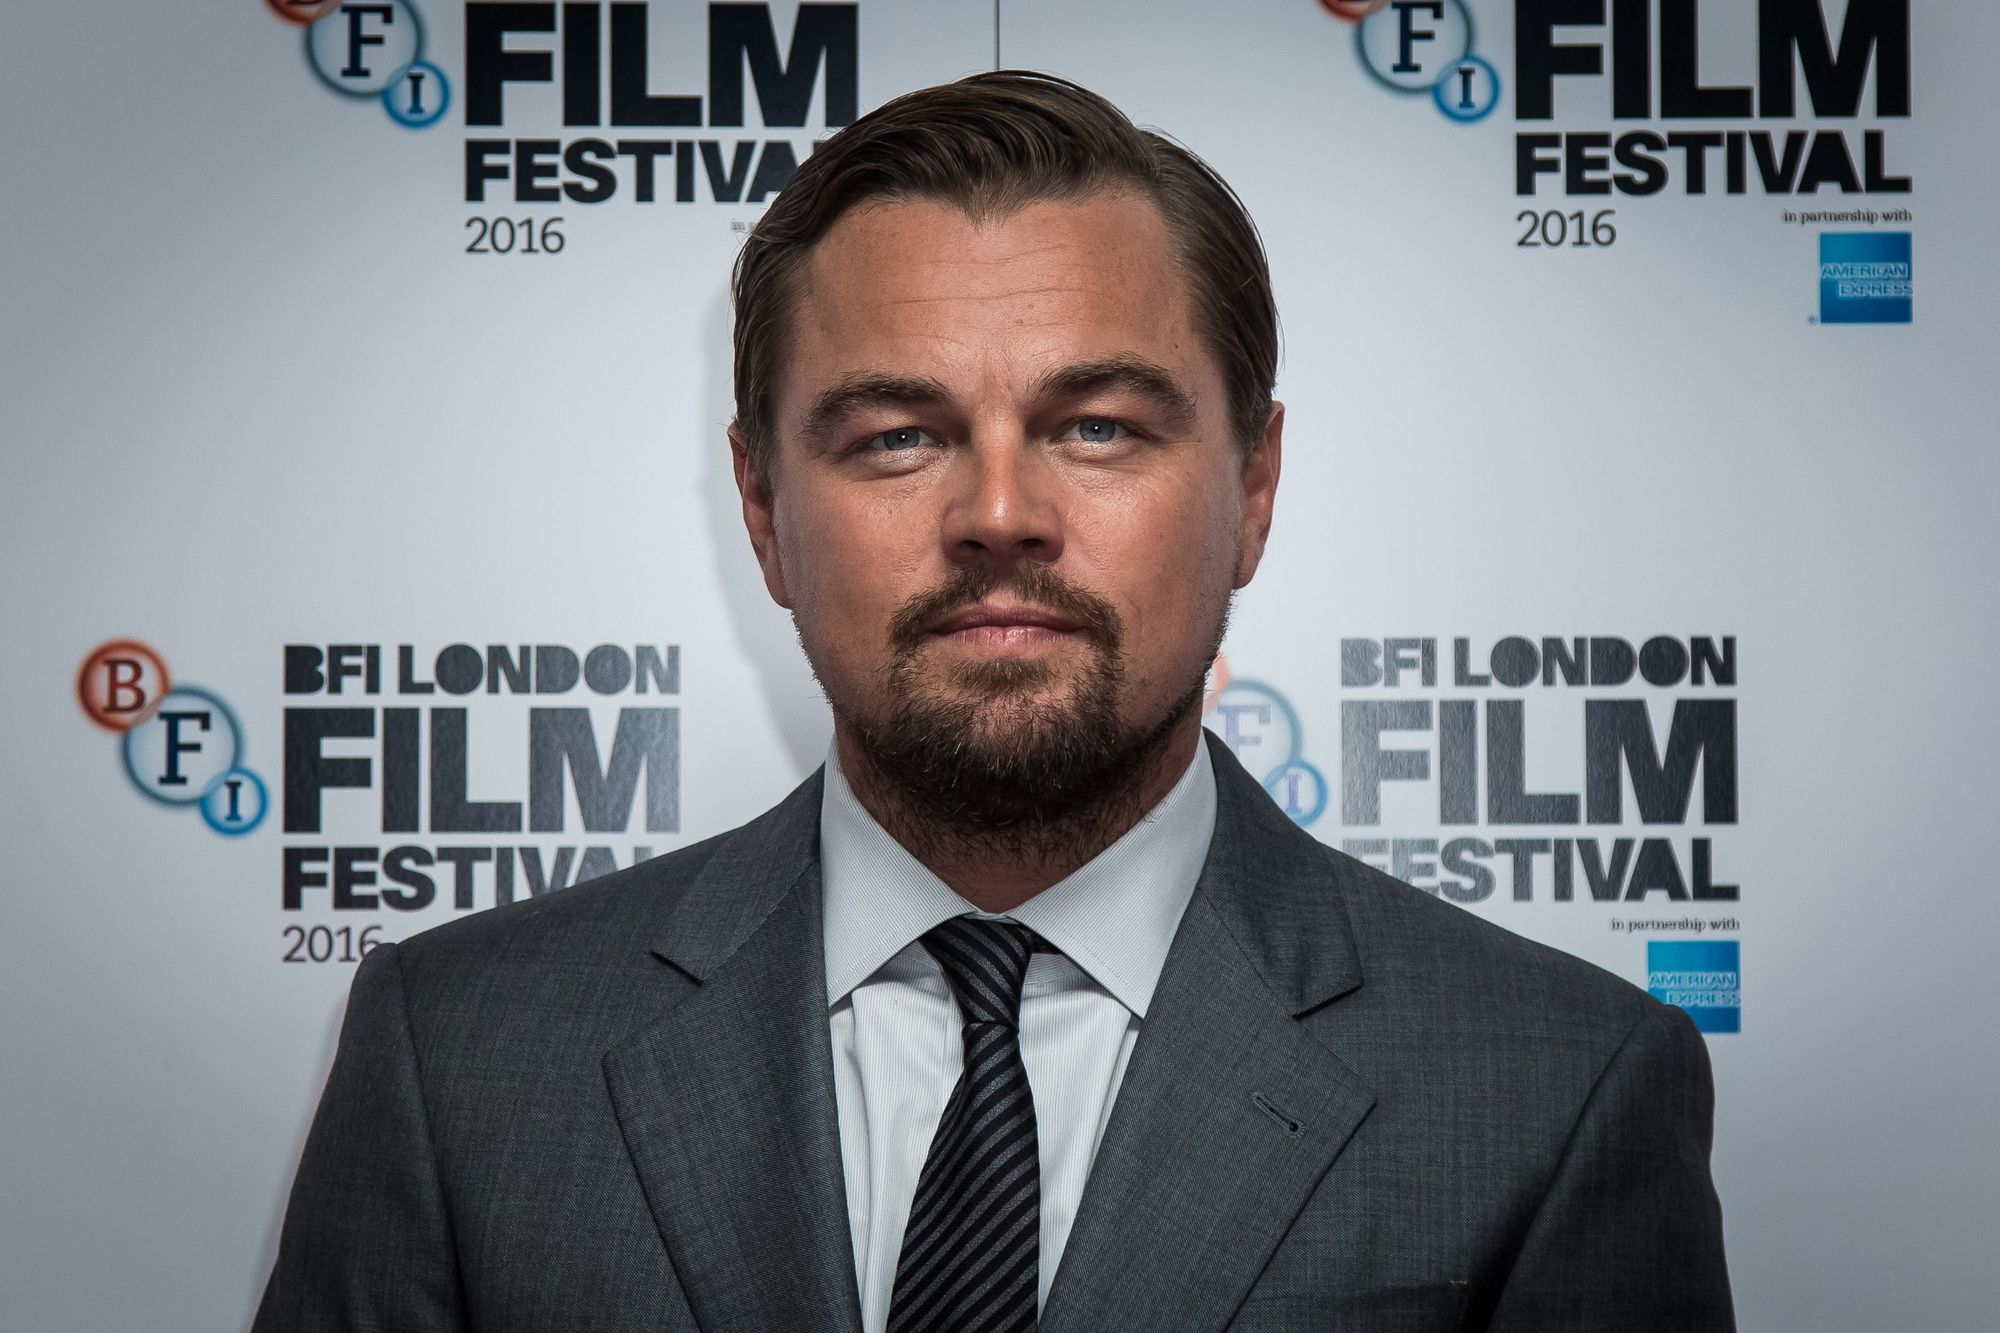 close up shot of leonardo dicaprio on the red carpet with side part hairstyle, wearing suit and tie